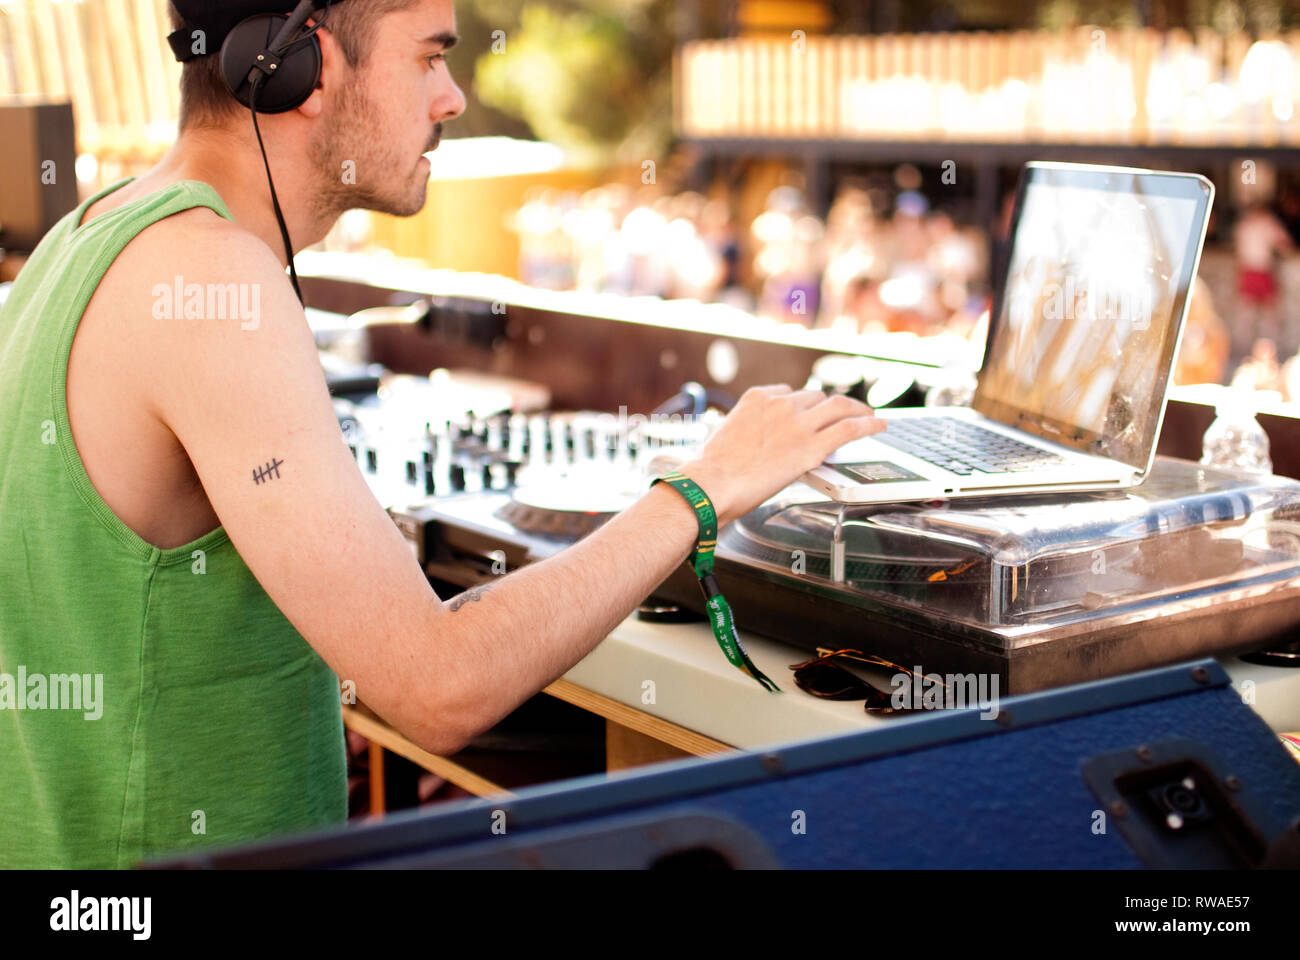 DJ Oneman playing at Hideout festival pool party on Zrce beach, Croatia, by Georgina Cook - Stock Image